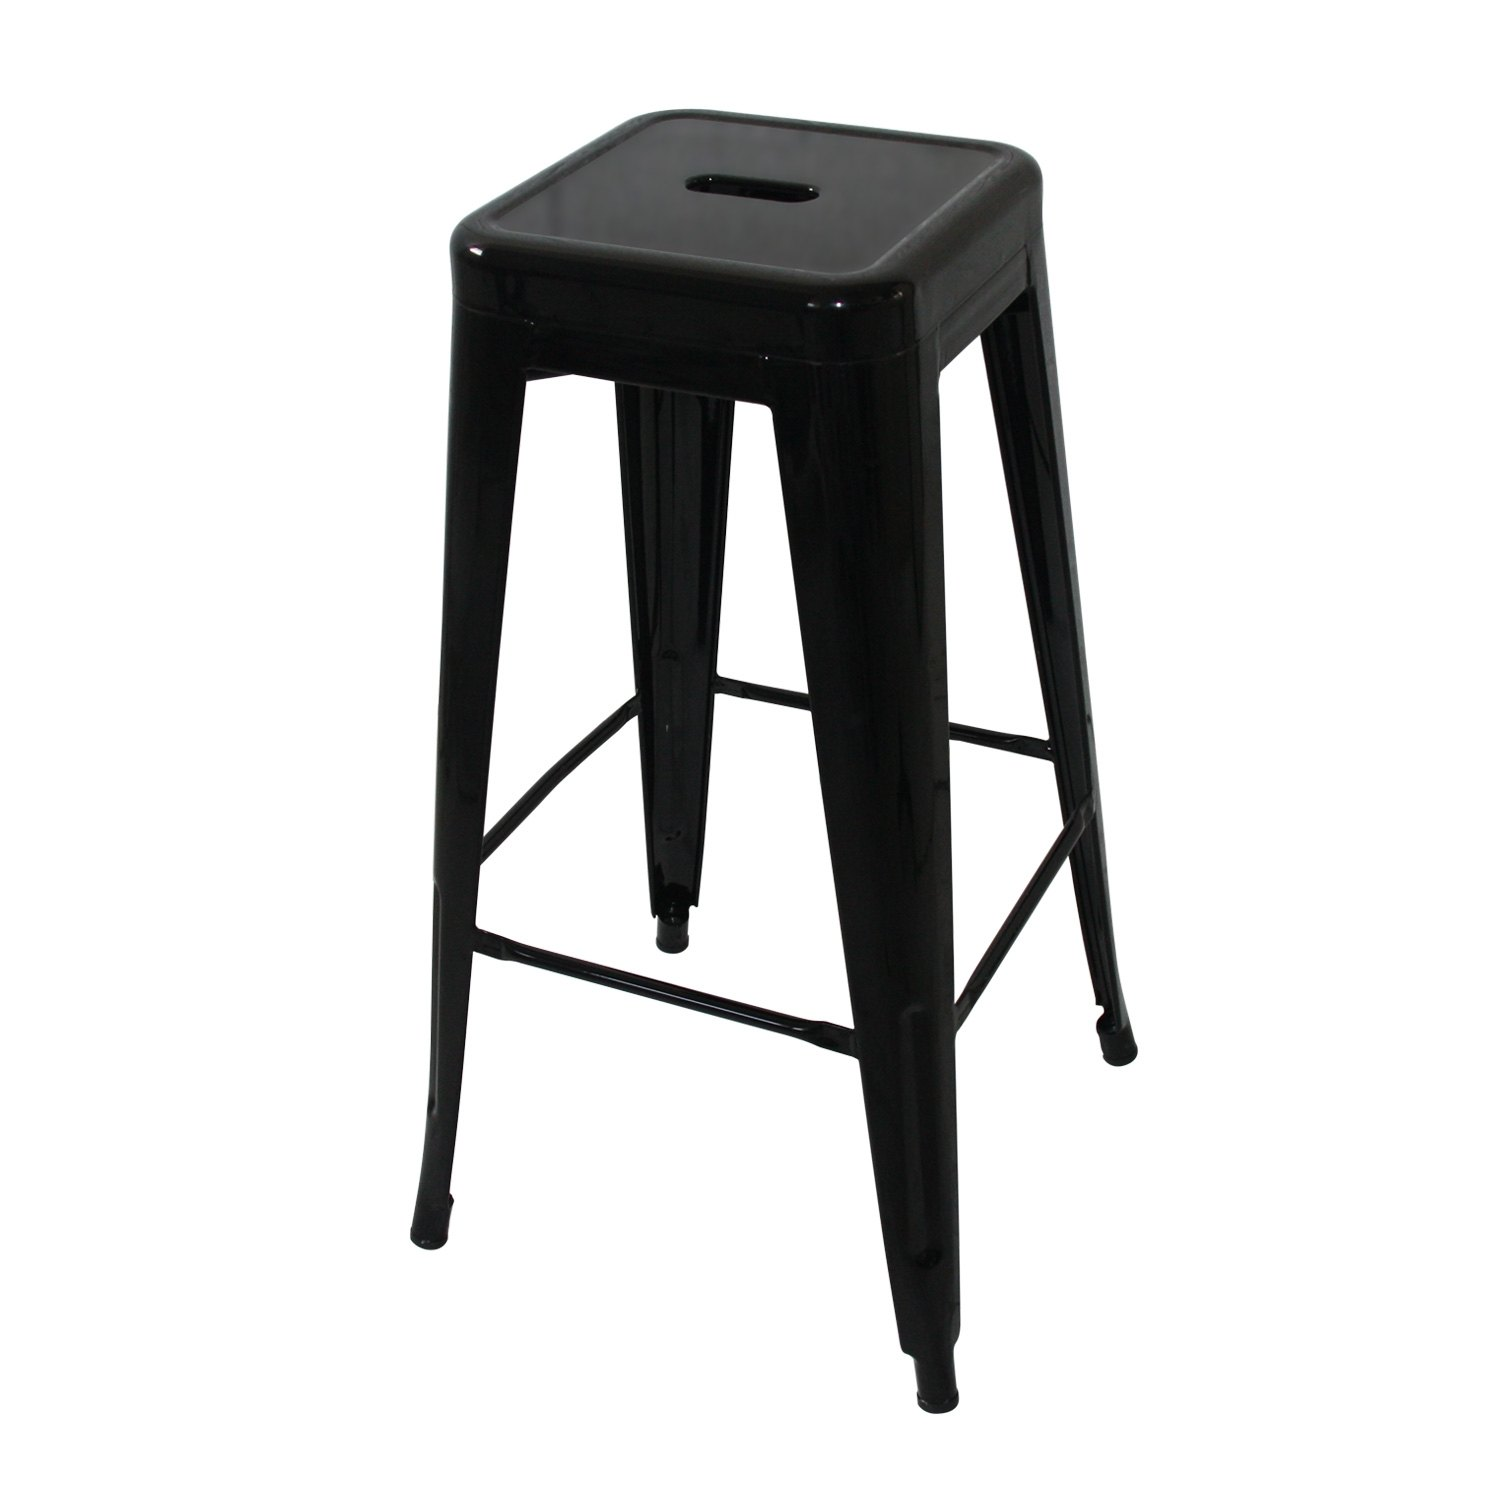 tabouret tolix pas cher tabouret de bar fixe design le mans pas inoui tabouret de bar pas cher. Black Bedroom Furniture Sets. Home Design Ideas